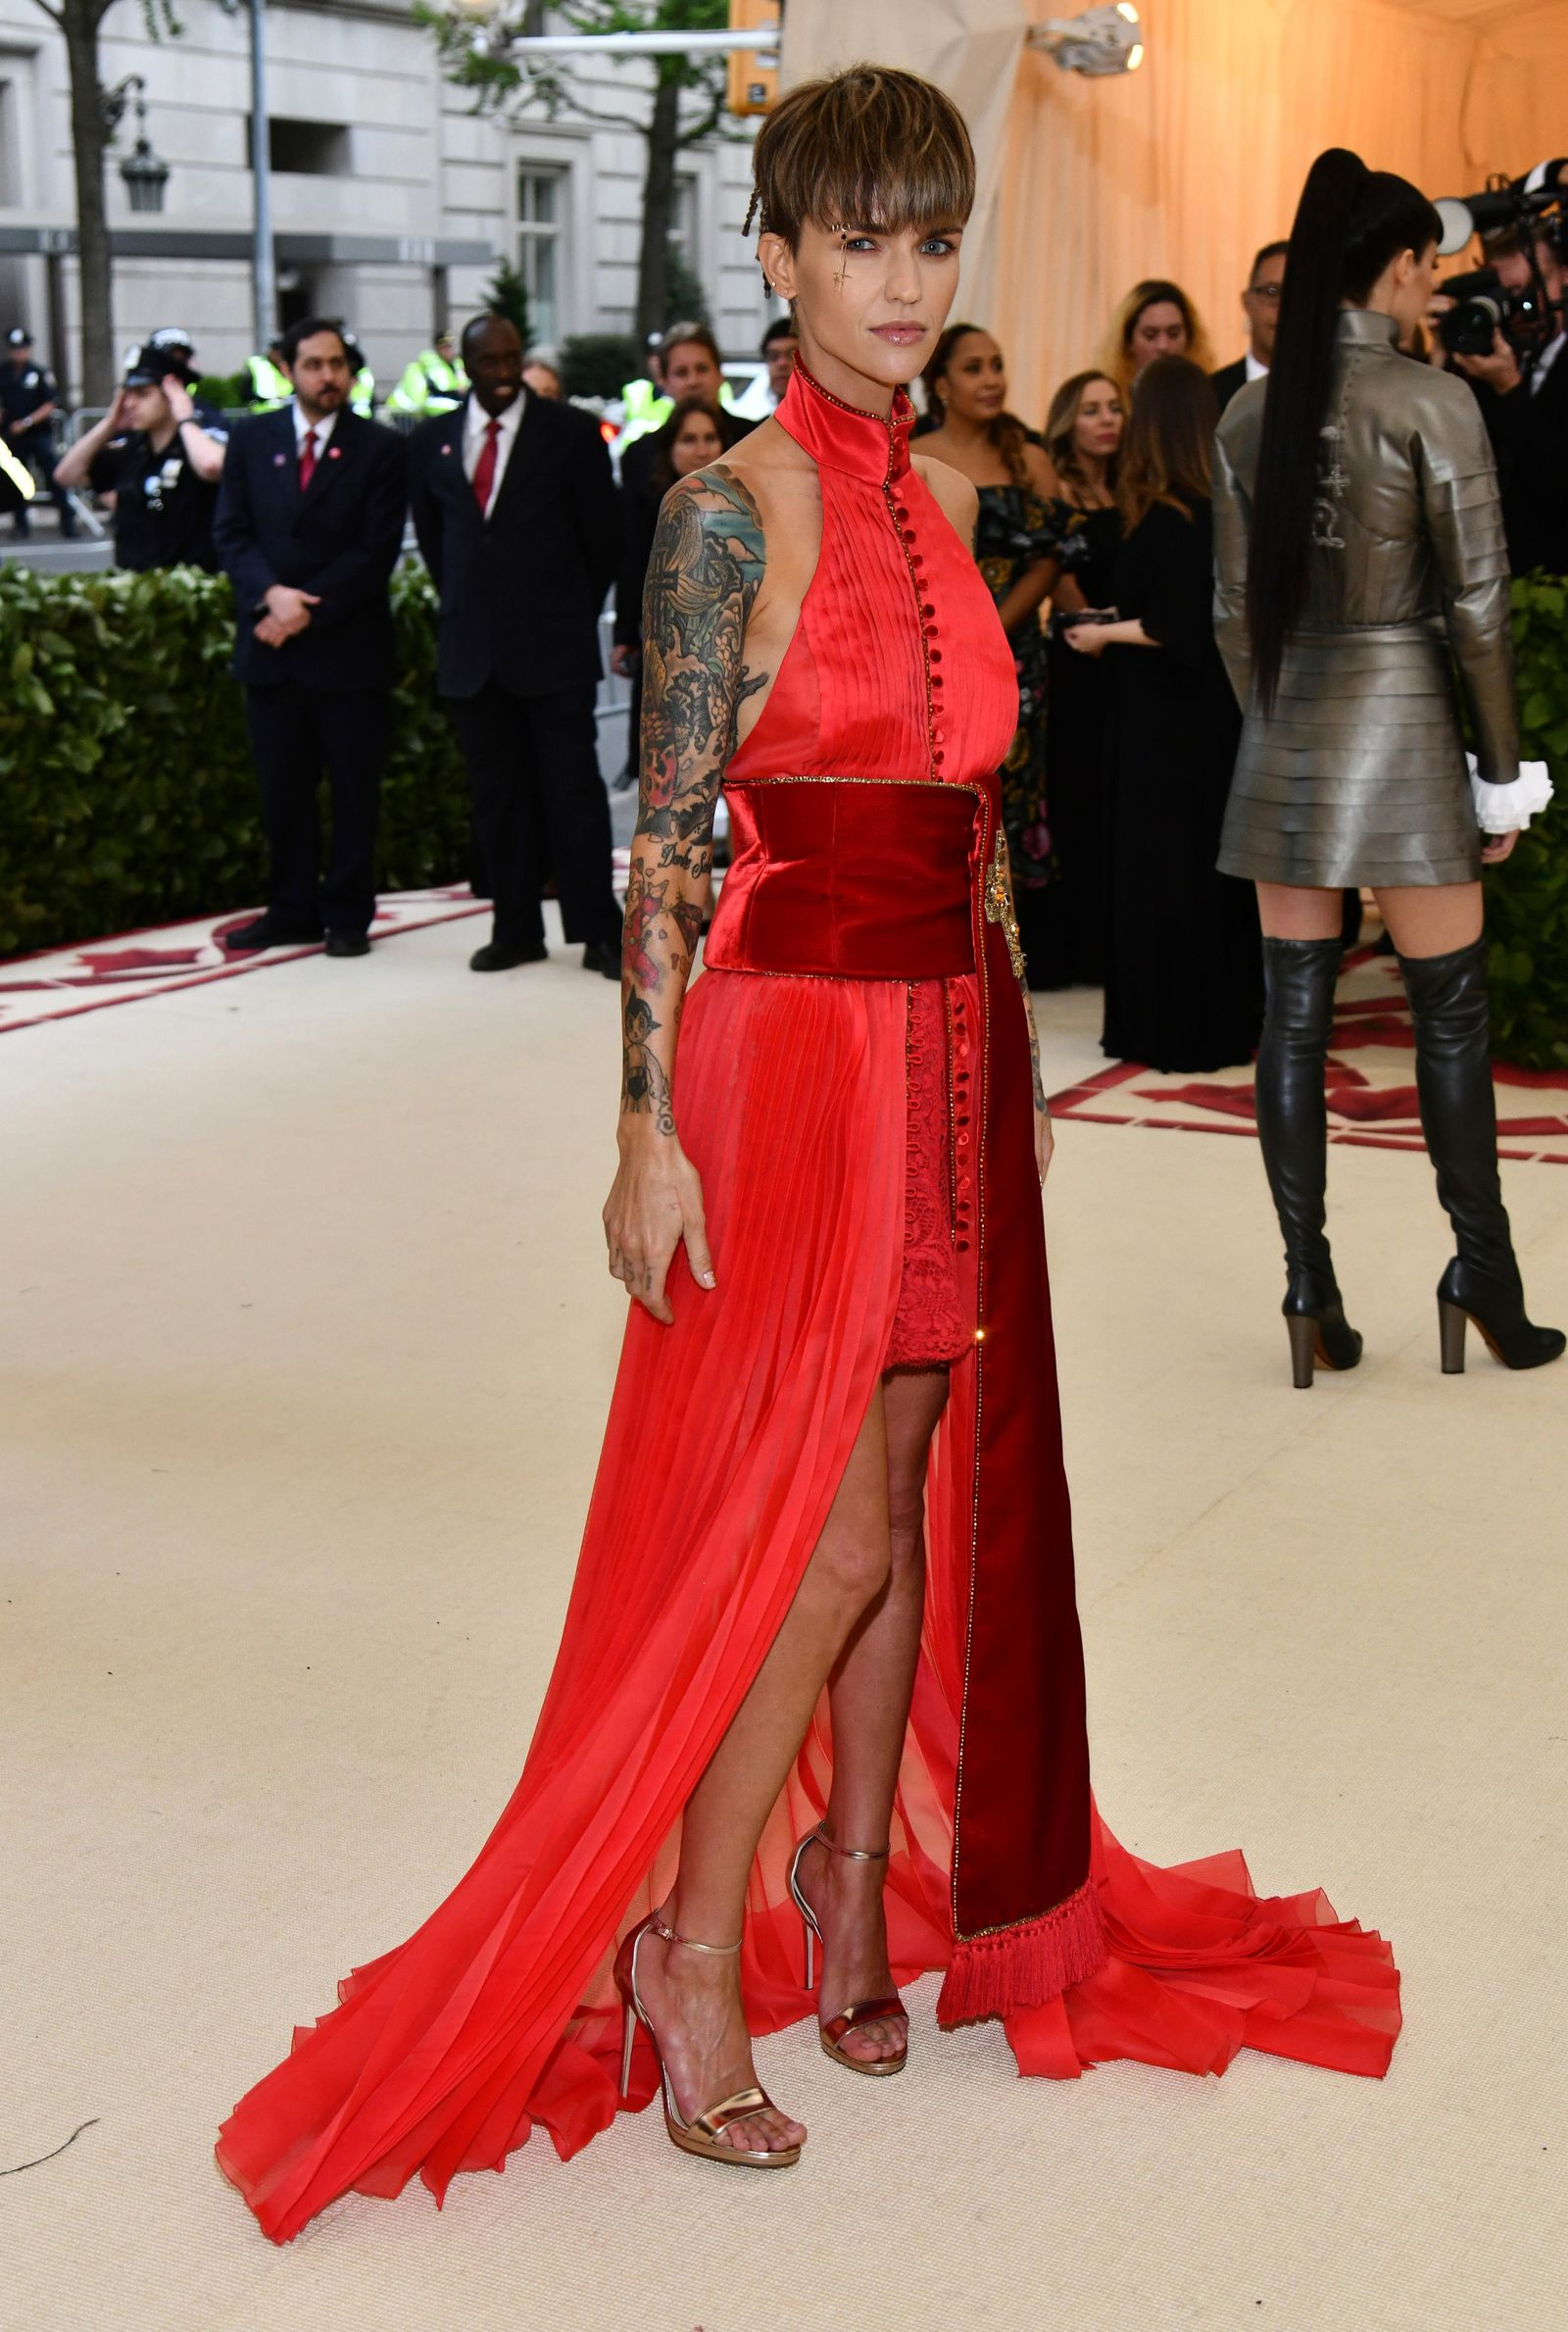 Ruby Rose attends The Metropolitan Museum of Art's Costume Institute benefit gala celebrating the opening of the Heavenly Bodies: Fashion and the Catholic Imagination exhibition in New York. (Photo by Charles Sykes/Invision/AP)